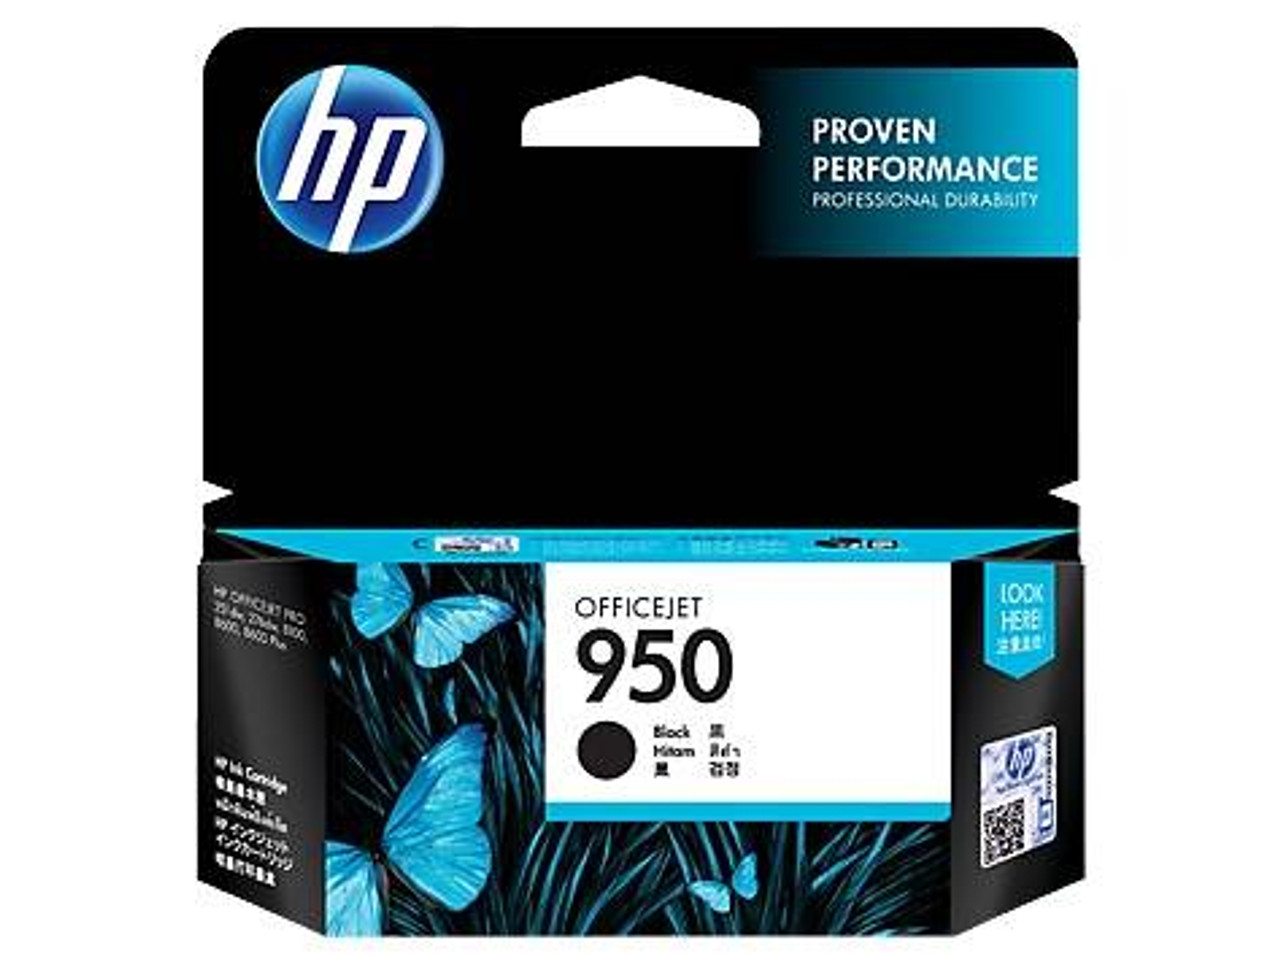 Image for HP CN049AA 950 Black Original Ink Cartridge, up to 1000 pages CX Computer Superstore